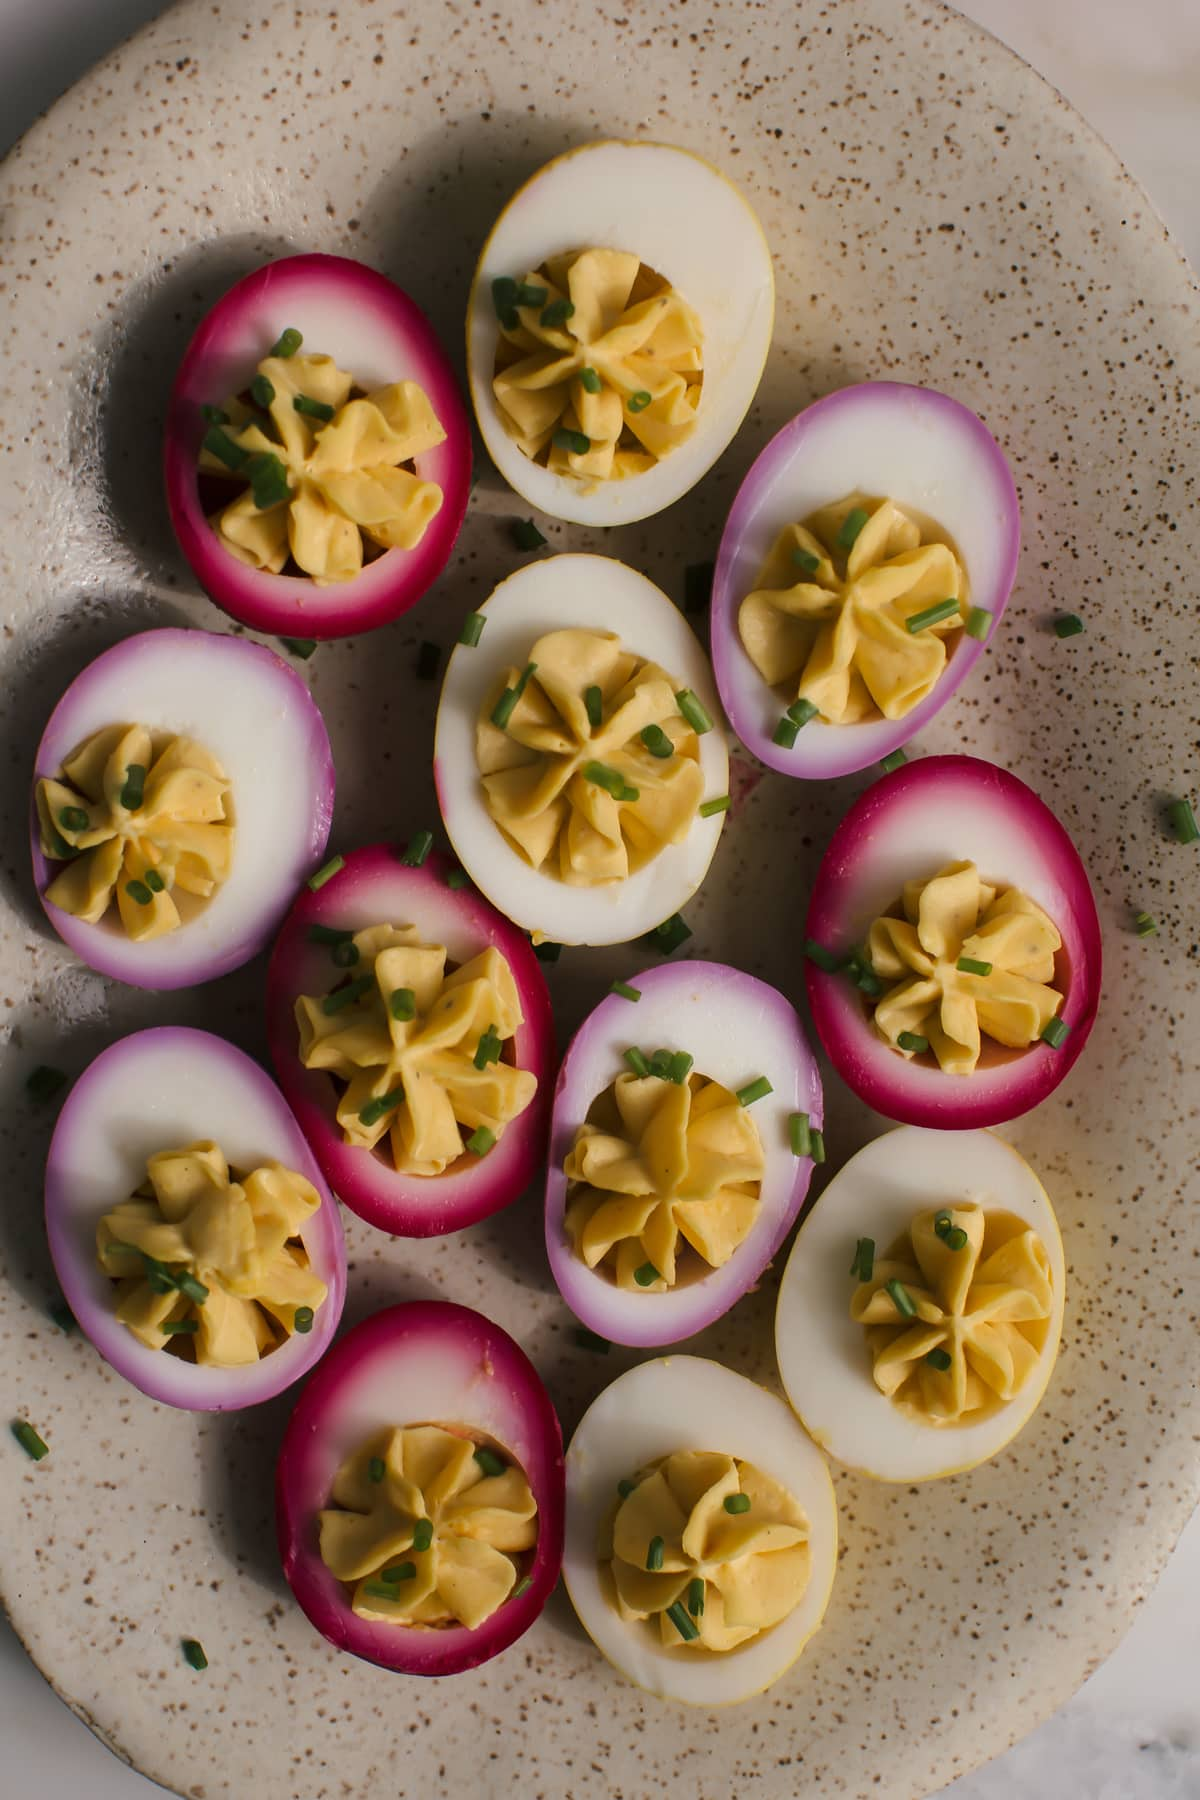 Naturally Pickled Deviled Eggs